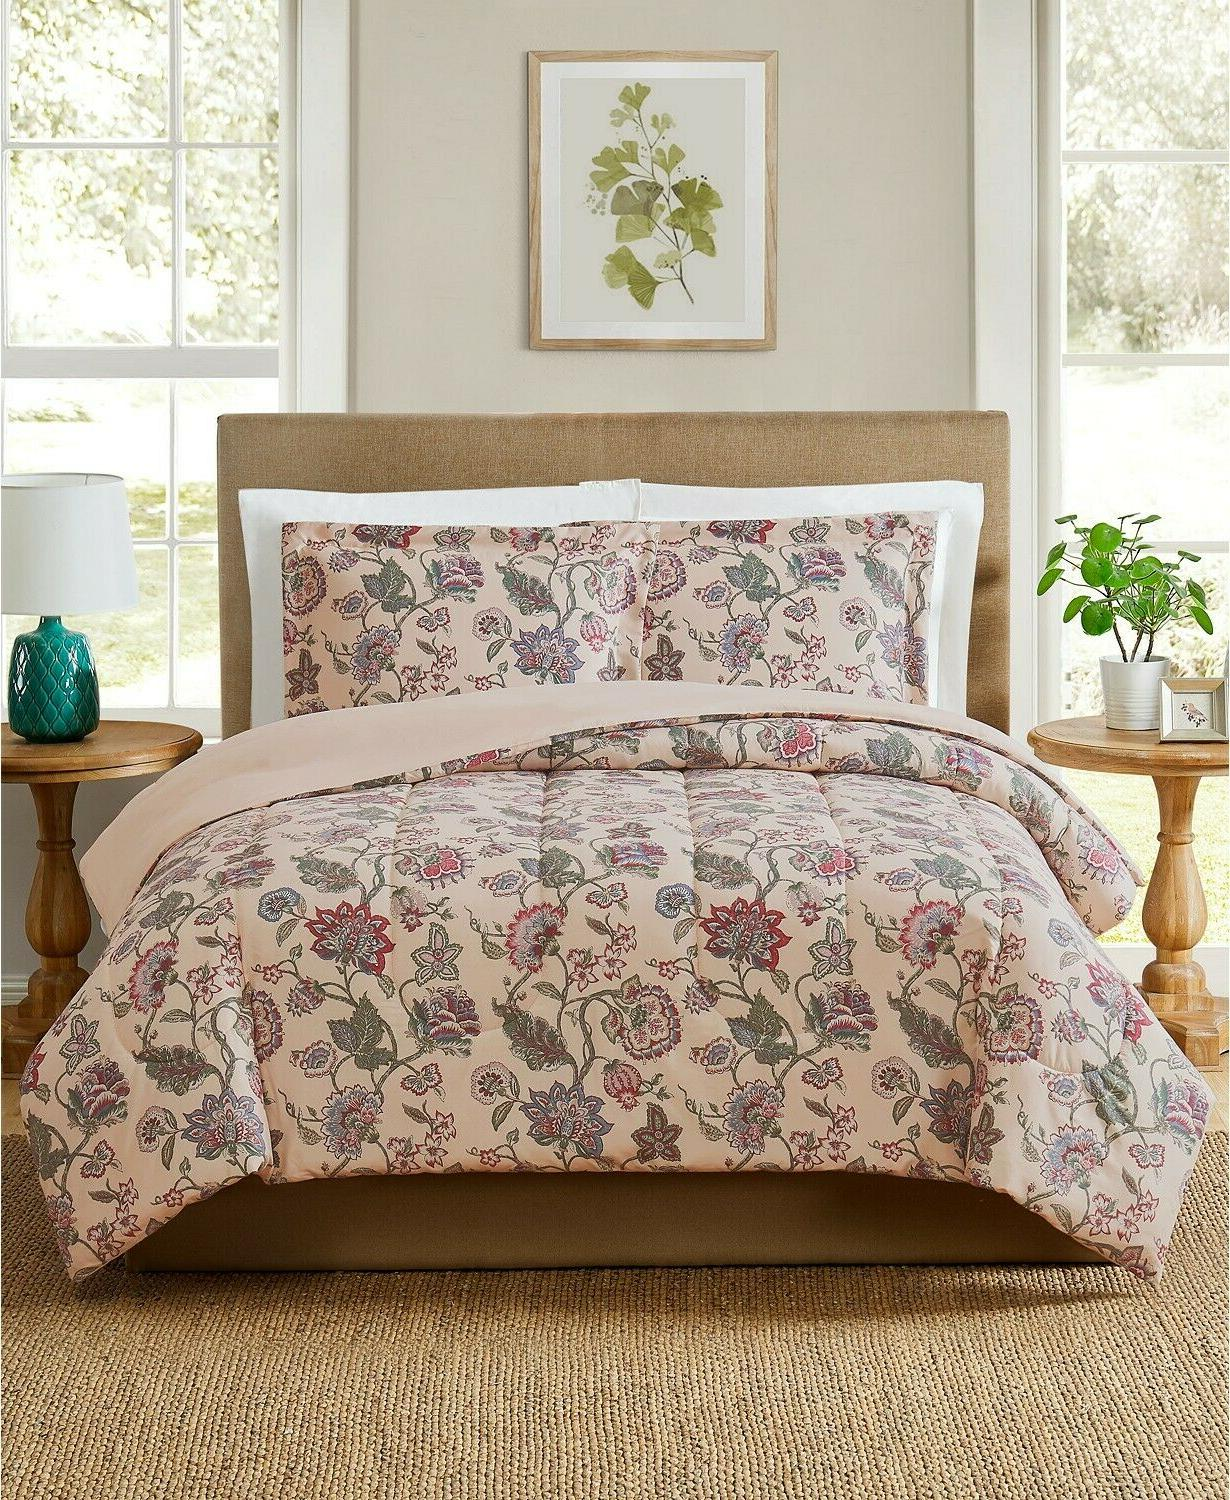 pem america 3 pc full queen comforter